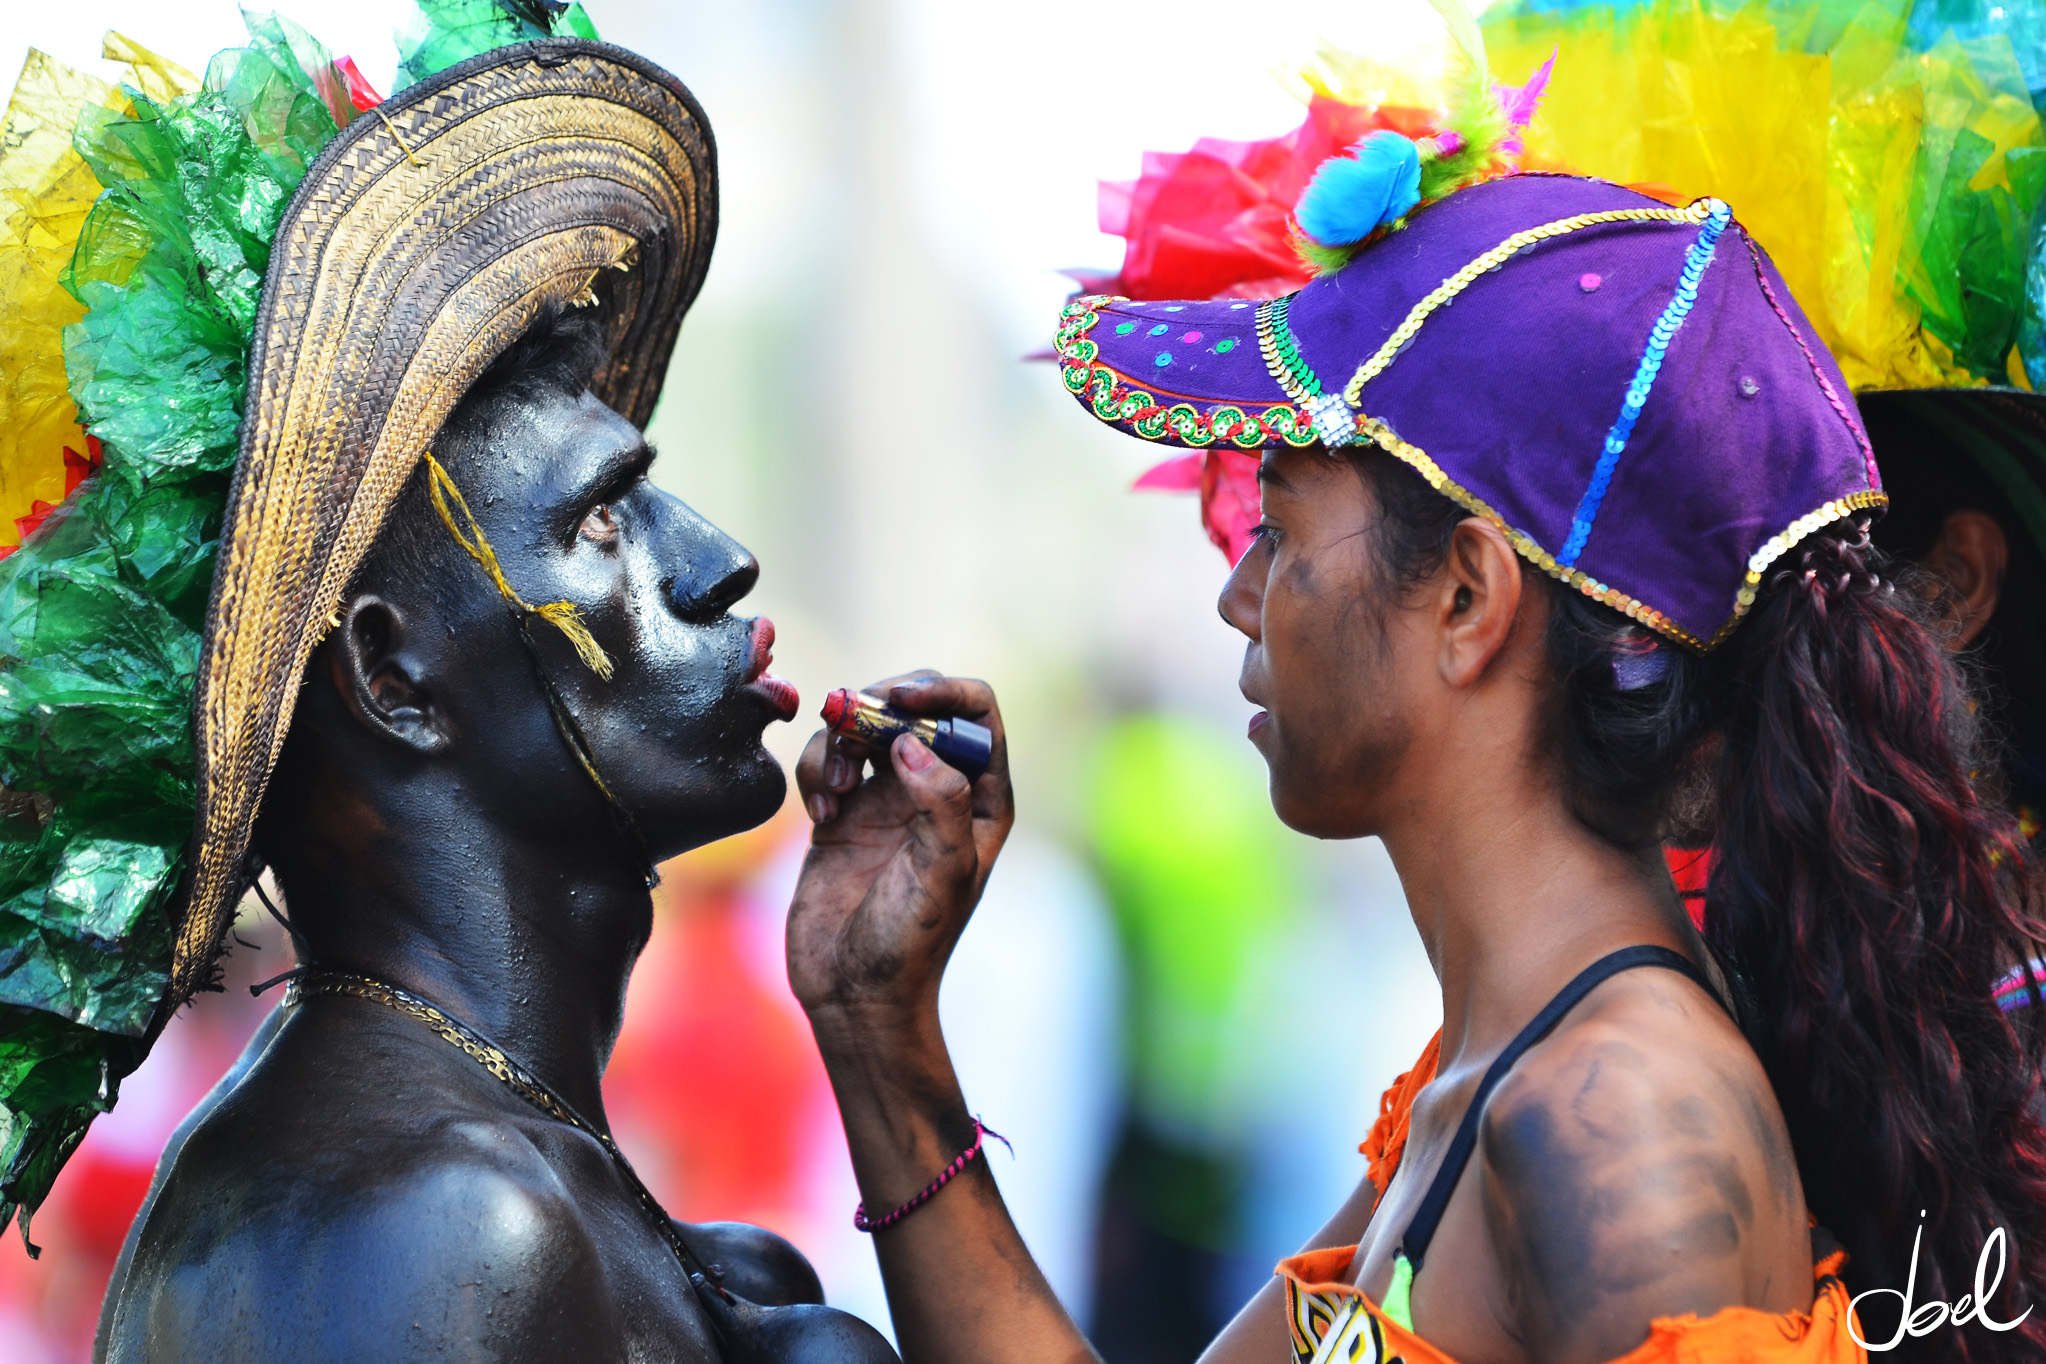 Reveler receives a finishing touch before taking part in the Flower Parade (Photo: Joel Duncan)